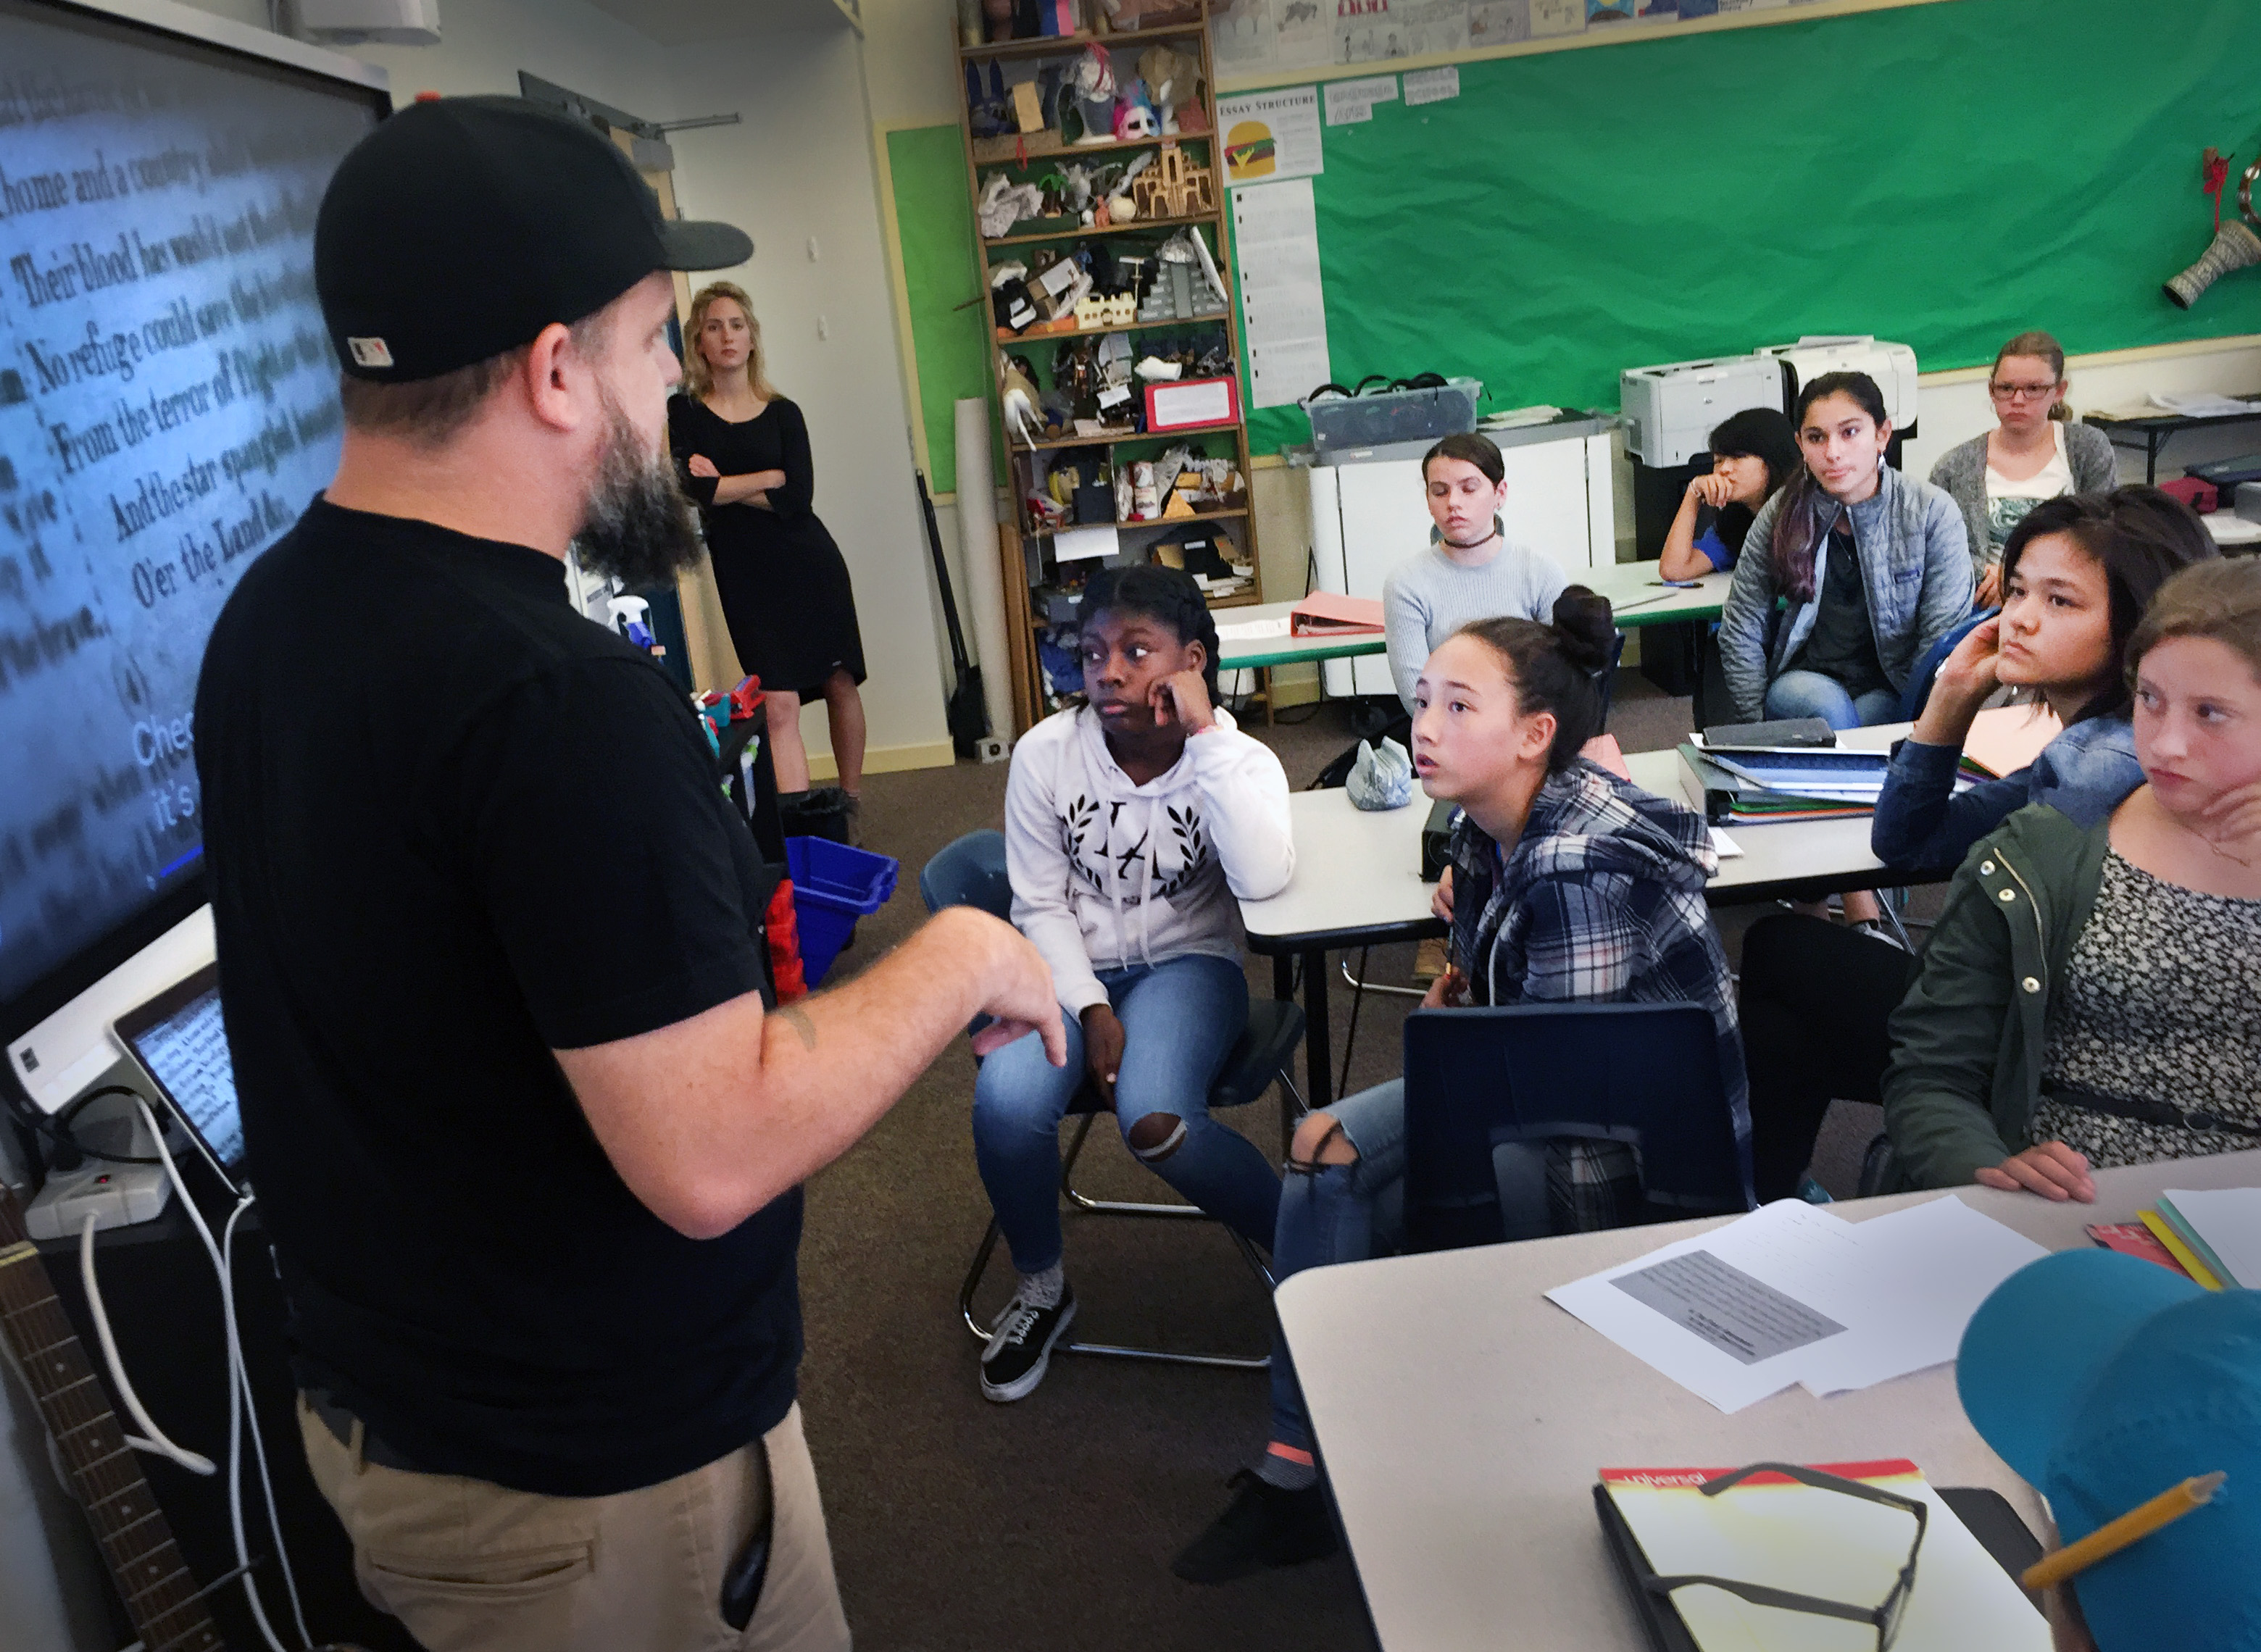 Dominic Altieri, an 8th grade history teacher at Synergy School in San Francisco, facilitates a class discussion about 49ers quarterback Colin Kaepernick's recent decision not to stand during the national anthem. Photo credit: Teresa Chin/Youth Radio